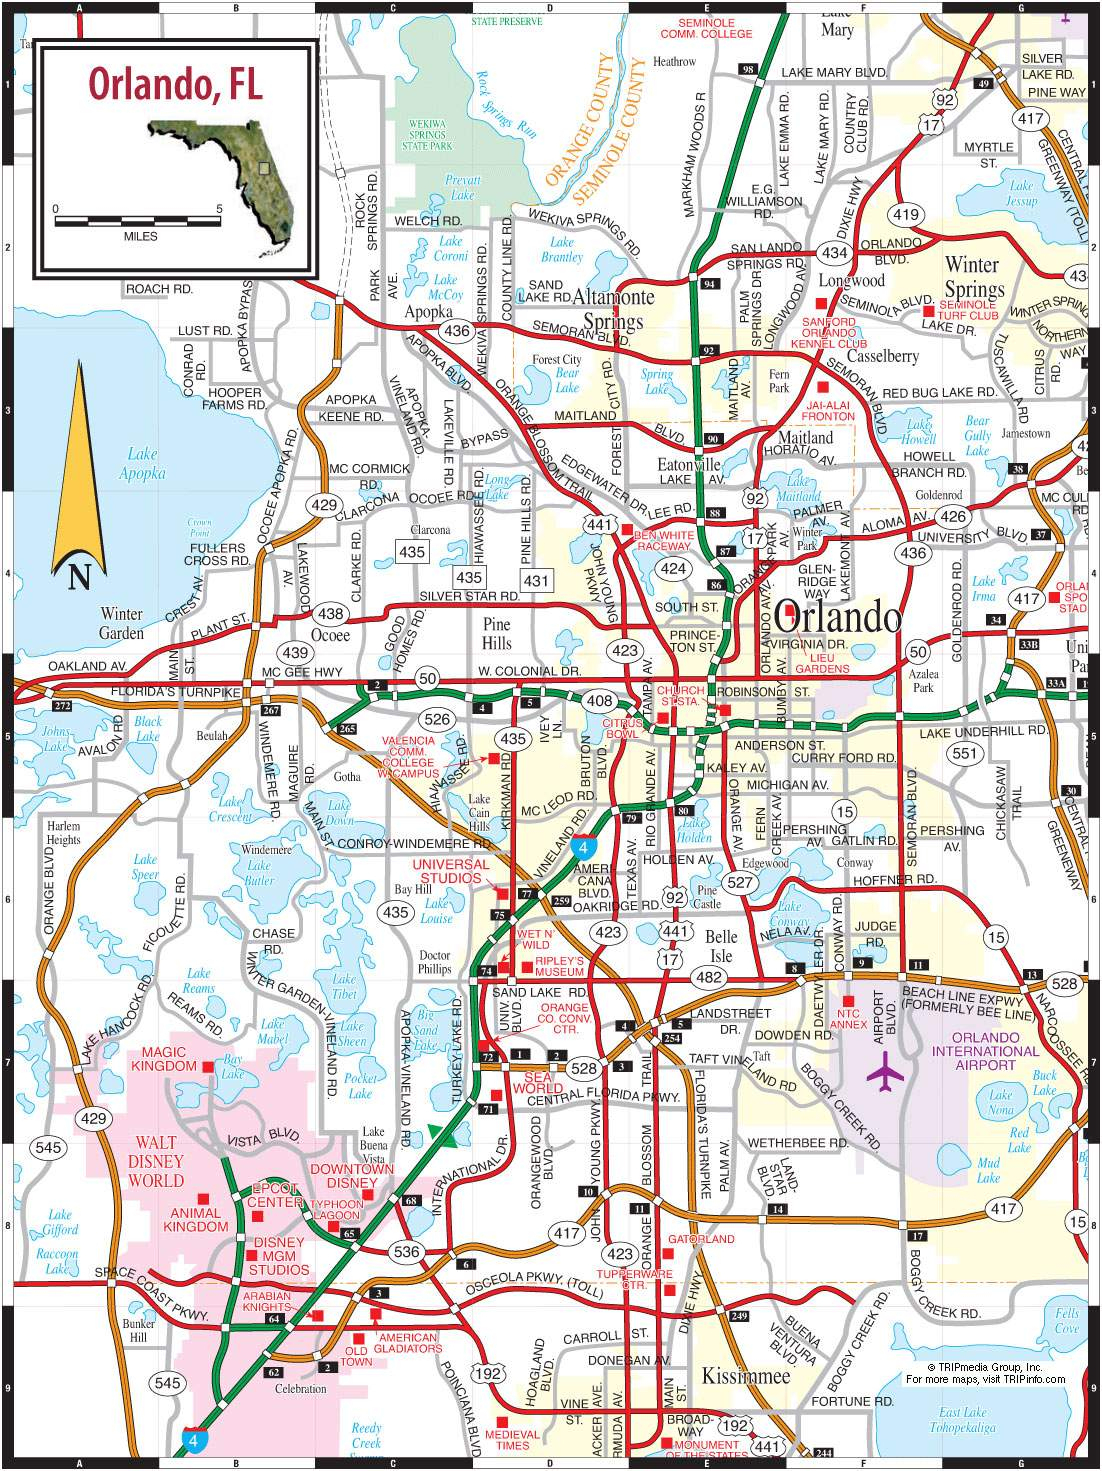 Large Orlando Maps For Free Download And Print | High-Resolution And - Orlando Florida Attractions Map